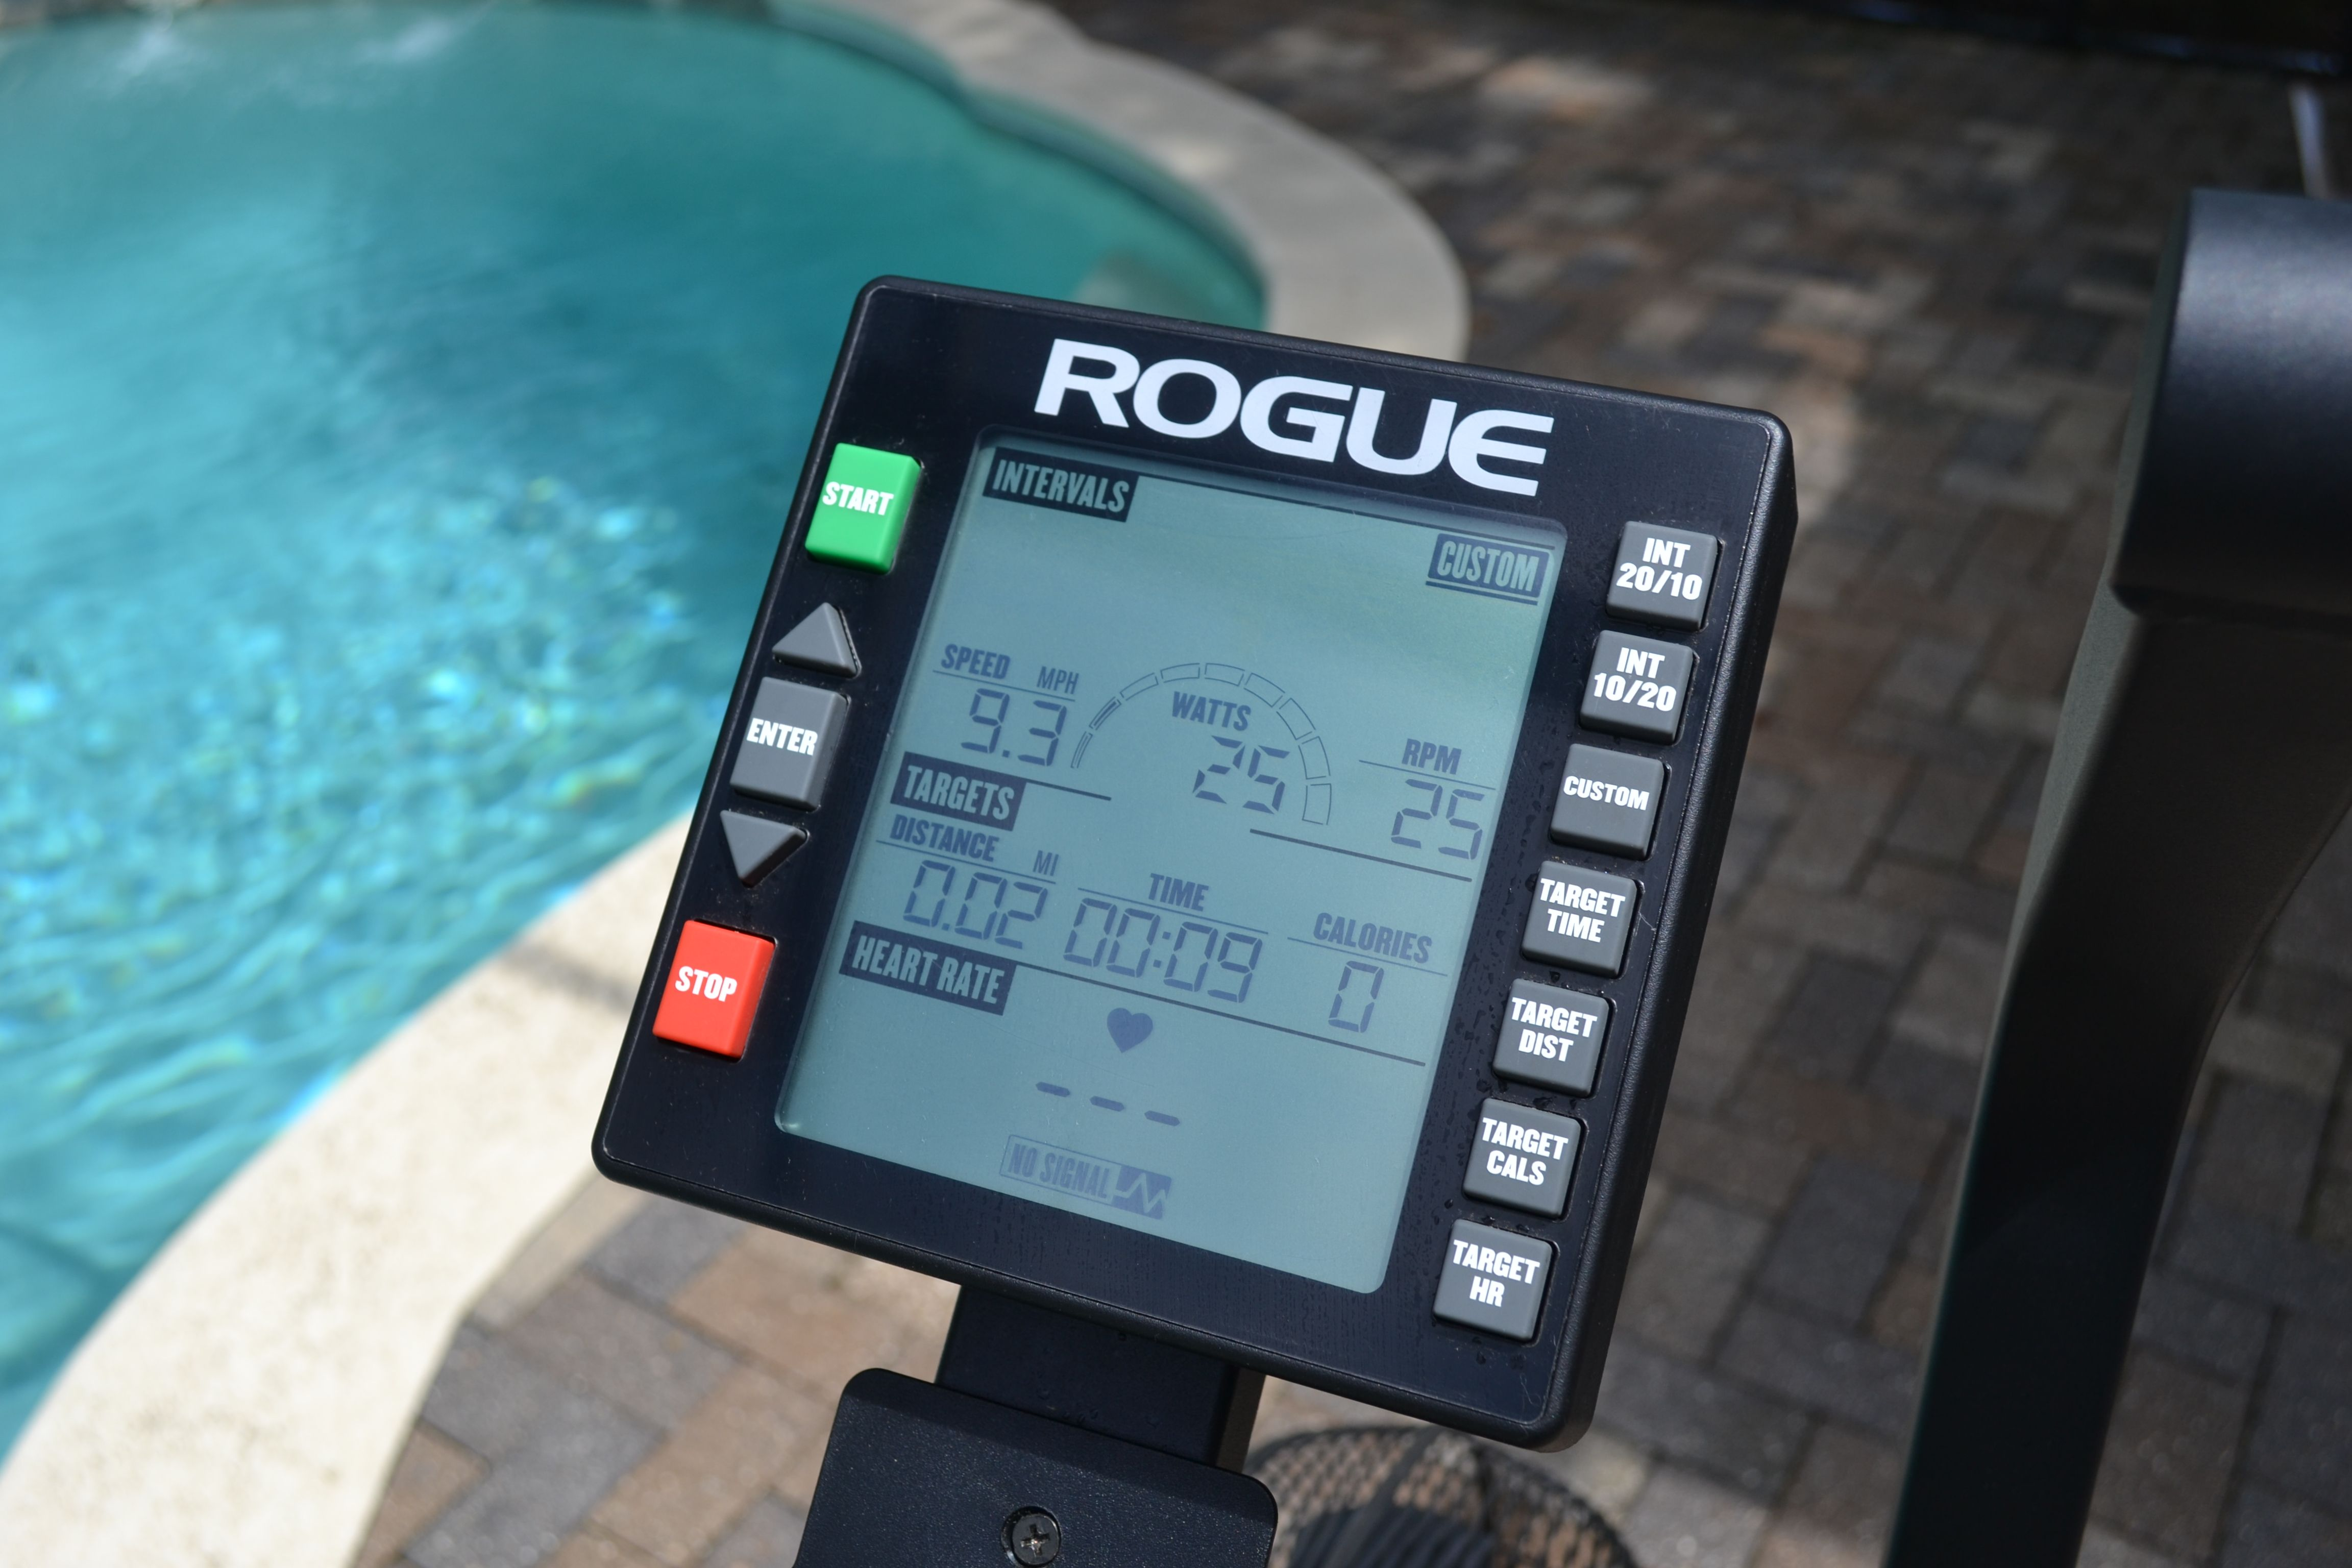 Rogue Echo Bike Review With Images Bike Reviews Crossfit Box